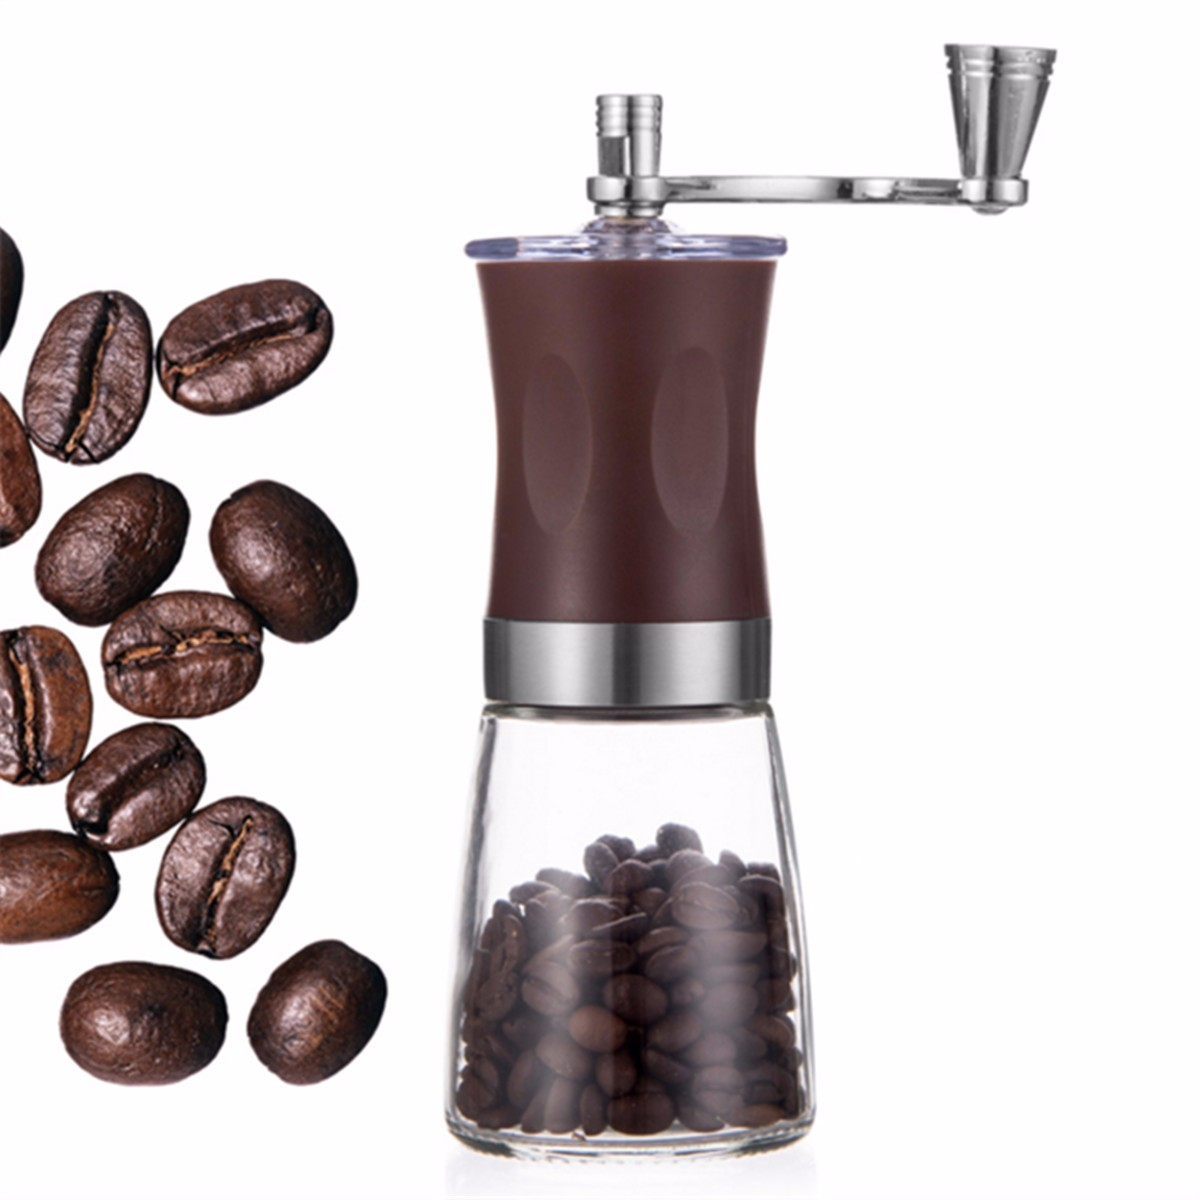 Can I Use A Coffee Grinder To Grind Spices